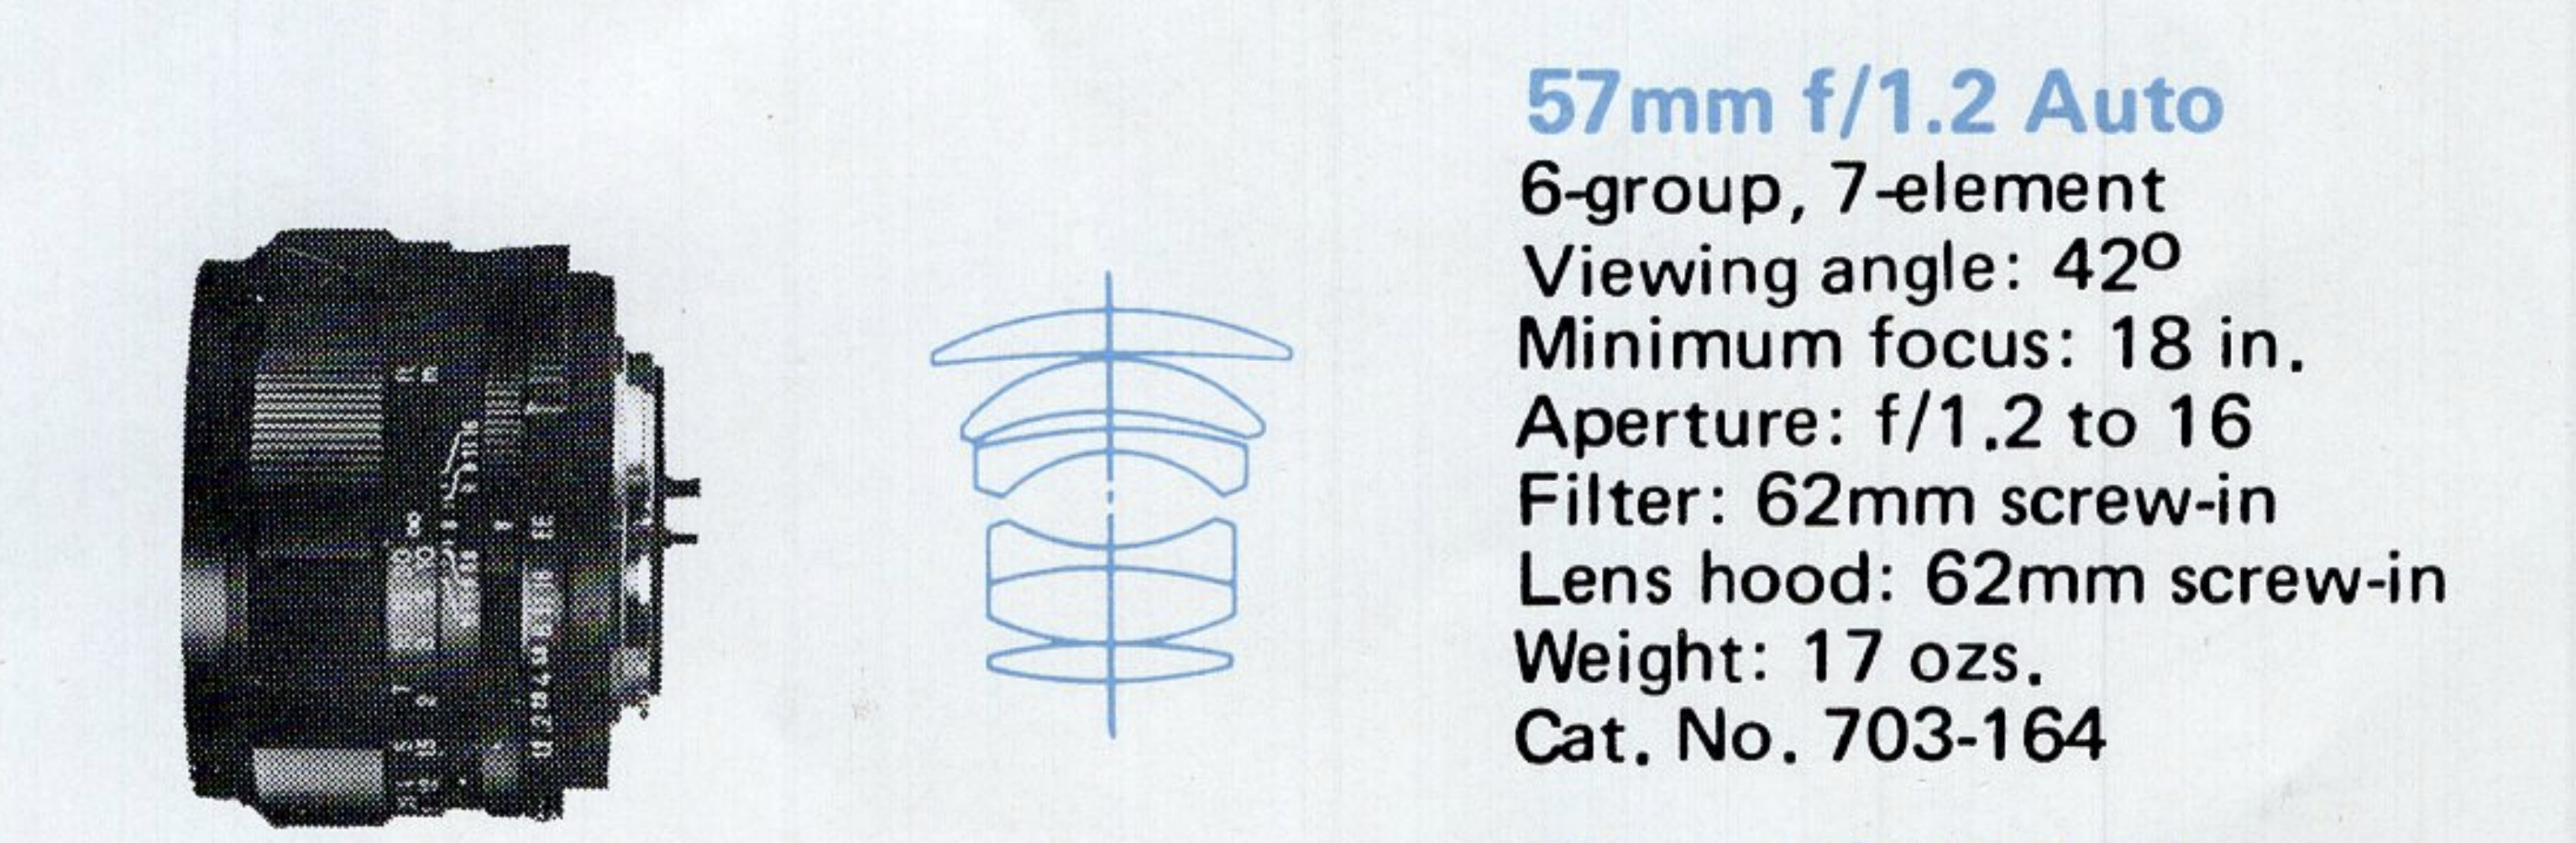 Konica Hexanon 57mm f1.2 Specifications and Diagram